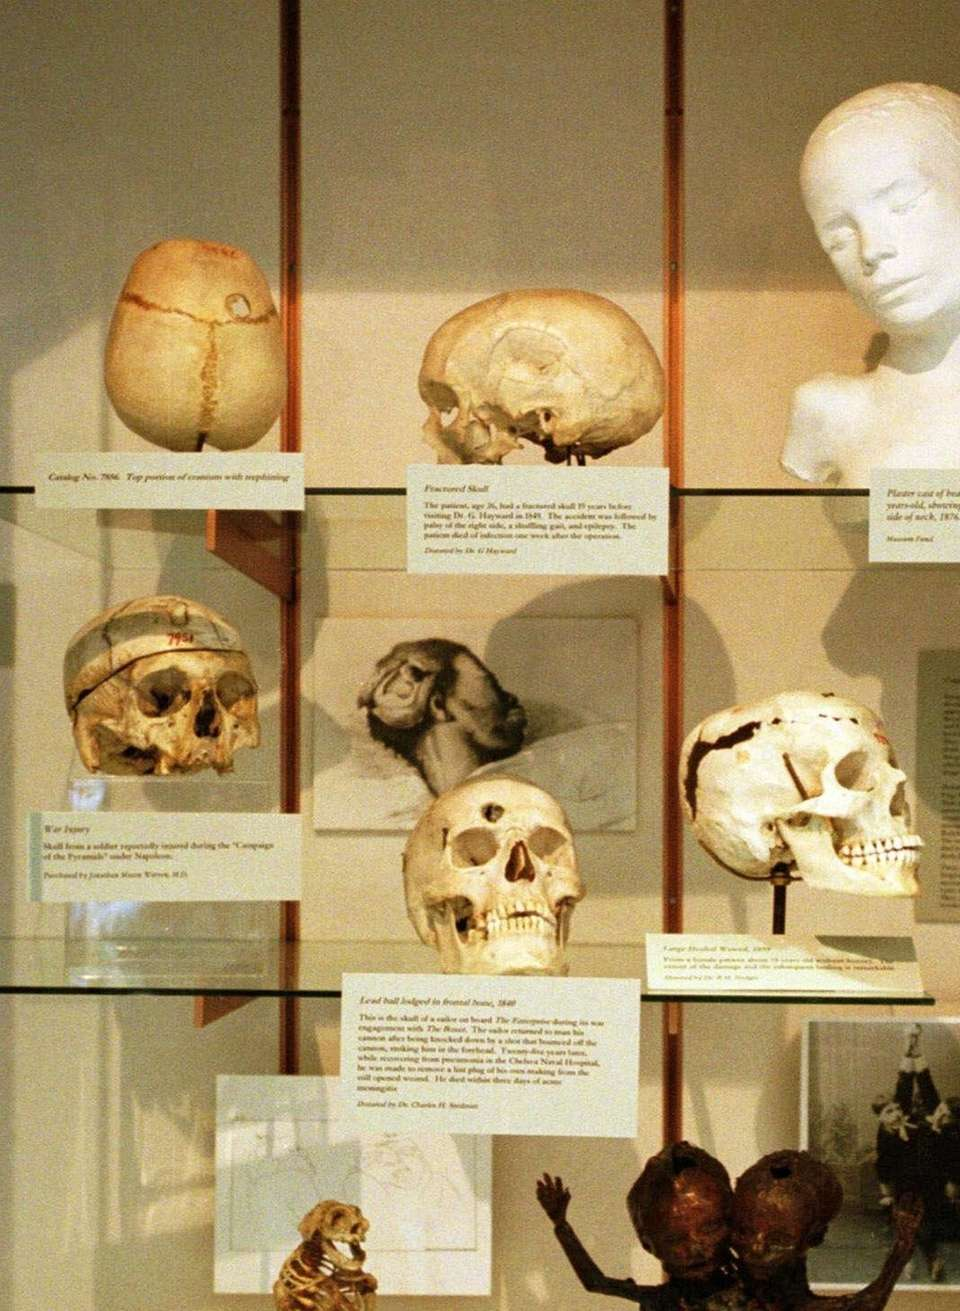 A collection of deformed human skulls and the